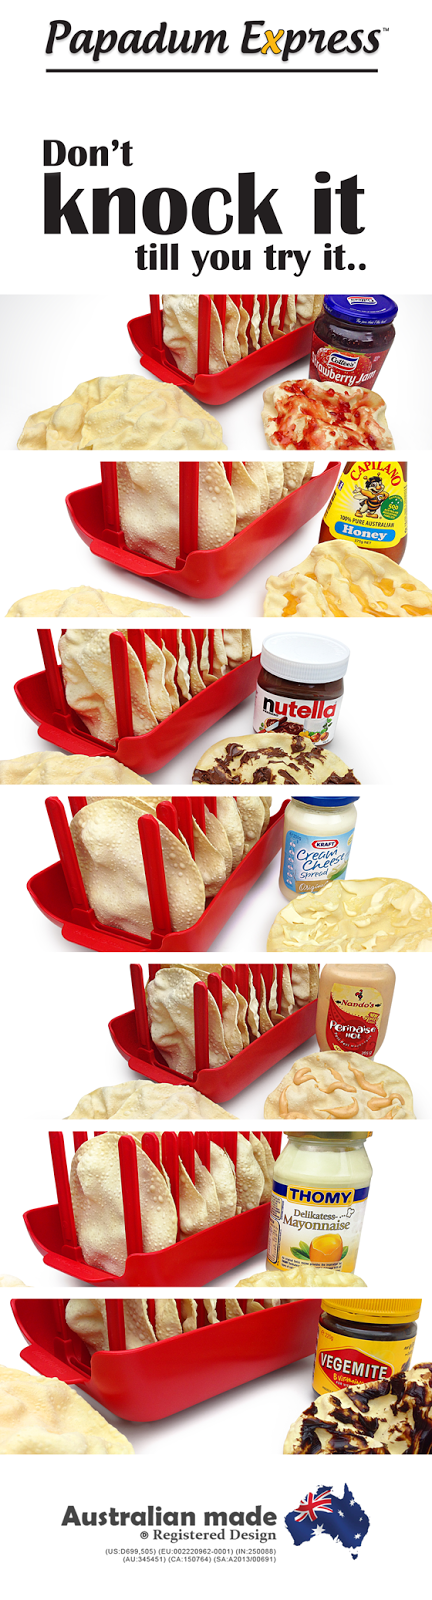 Vegemite-Kraft-Cheese-Nutella-Strawberry-Jam-Cottees-Nandos-Perinaise-Thomy-mayonnaise-Capilano-Honey-Pure-Bee-papad-how-microwave-papadum-express-frying-pan-microwave-can-you-cook-sharwoods-pupp2